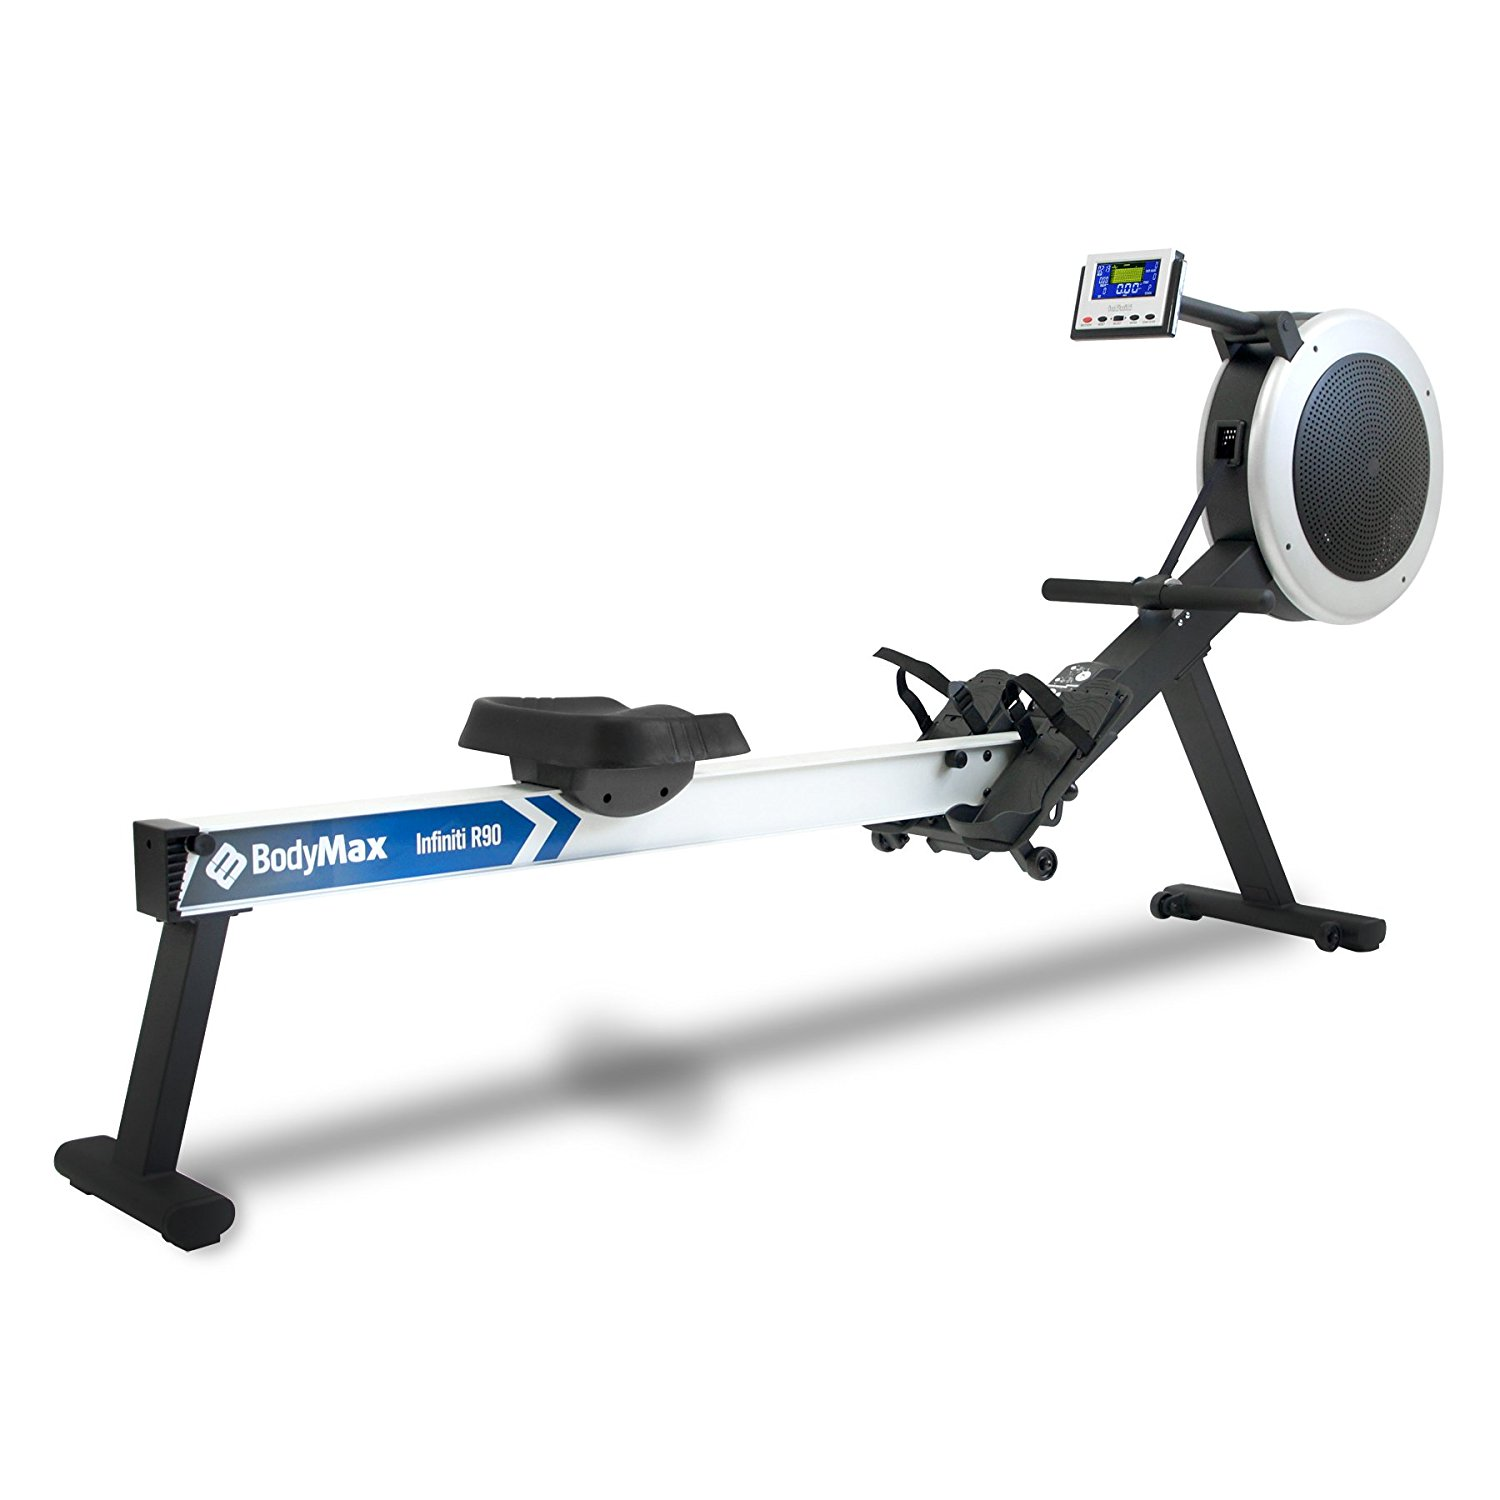 Bodymax fitness infiniti r rowing machine review rowing fan club